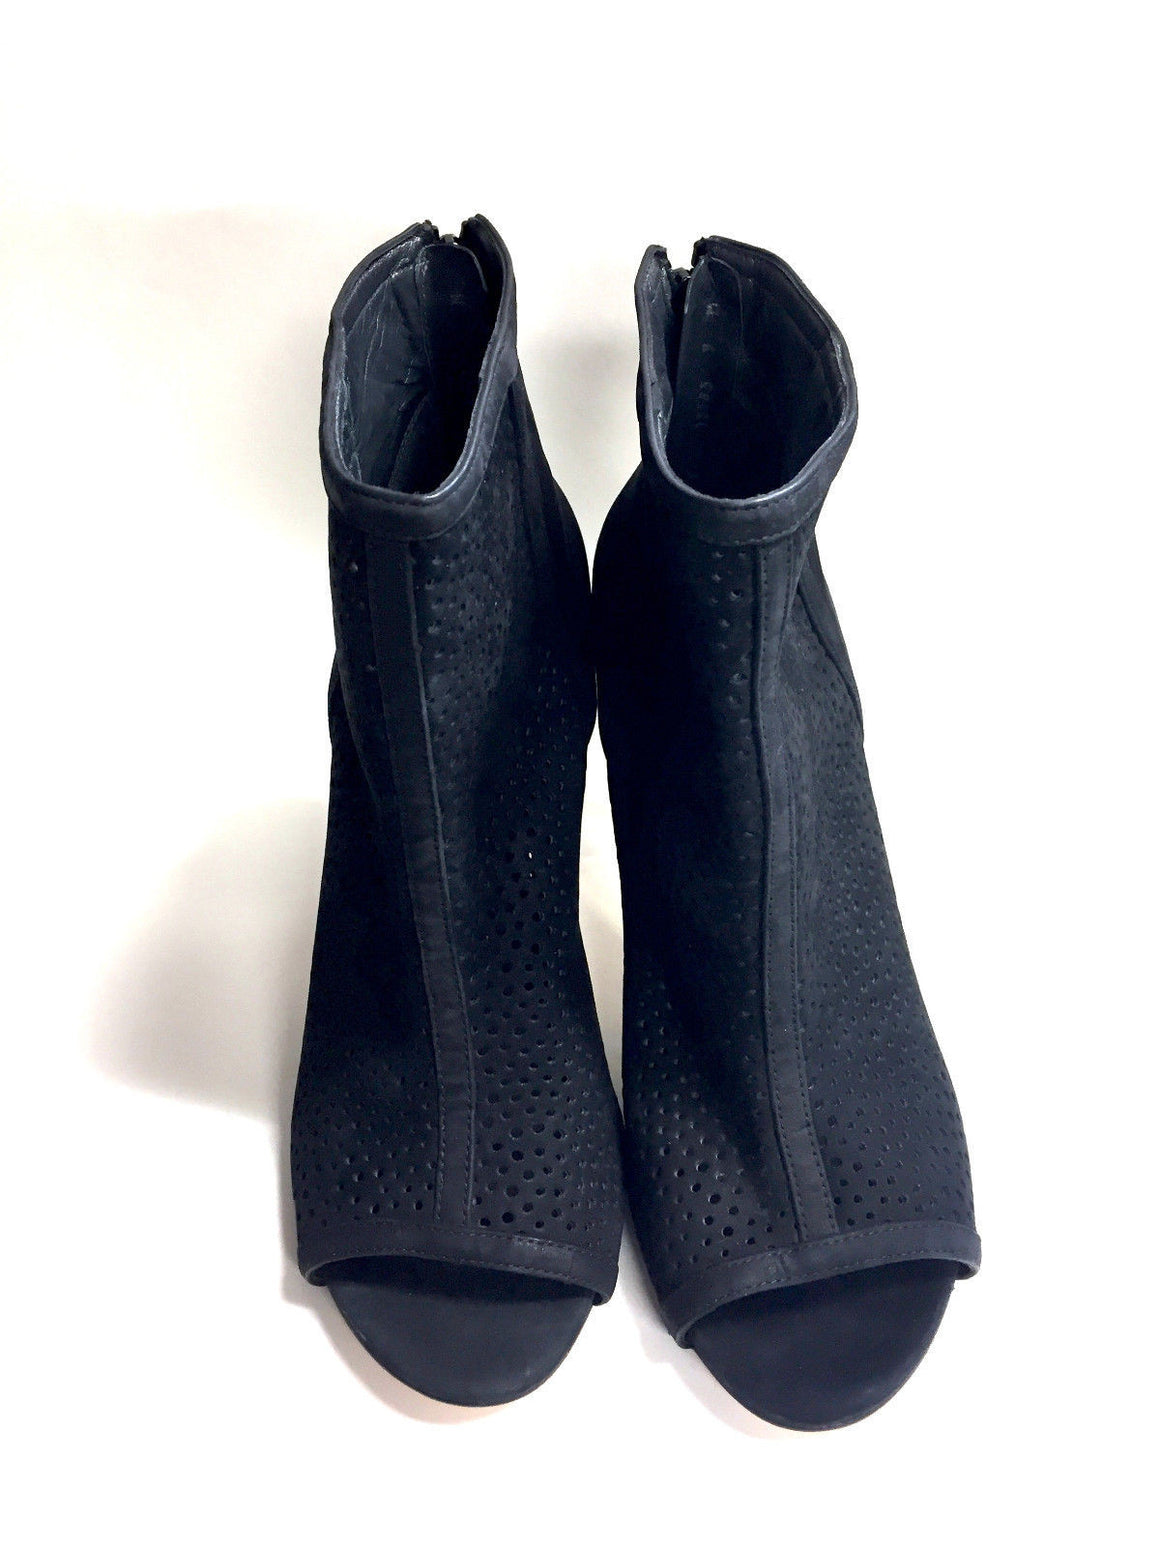 bisbiz.com STUART WEITZMAN  Black Suede Laser-Cut Vamps Open-Toe Hi-Heel Ankle Booties/Pumps Size: 9M - Bis Luxury Resale